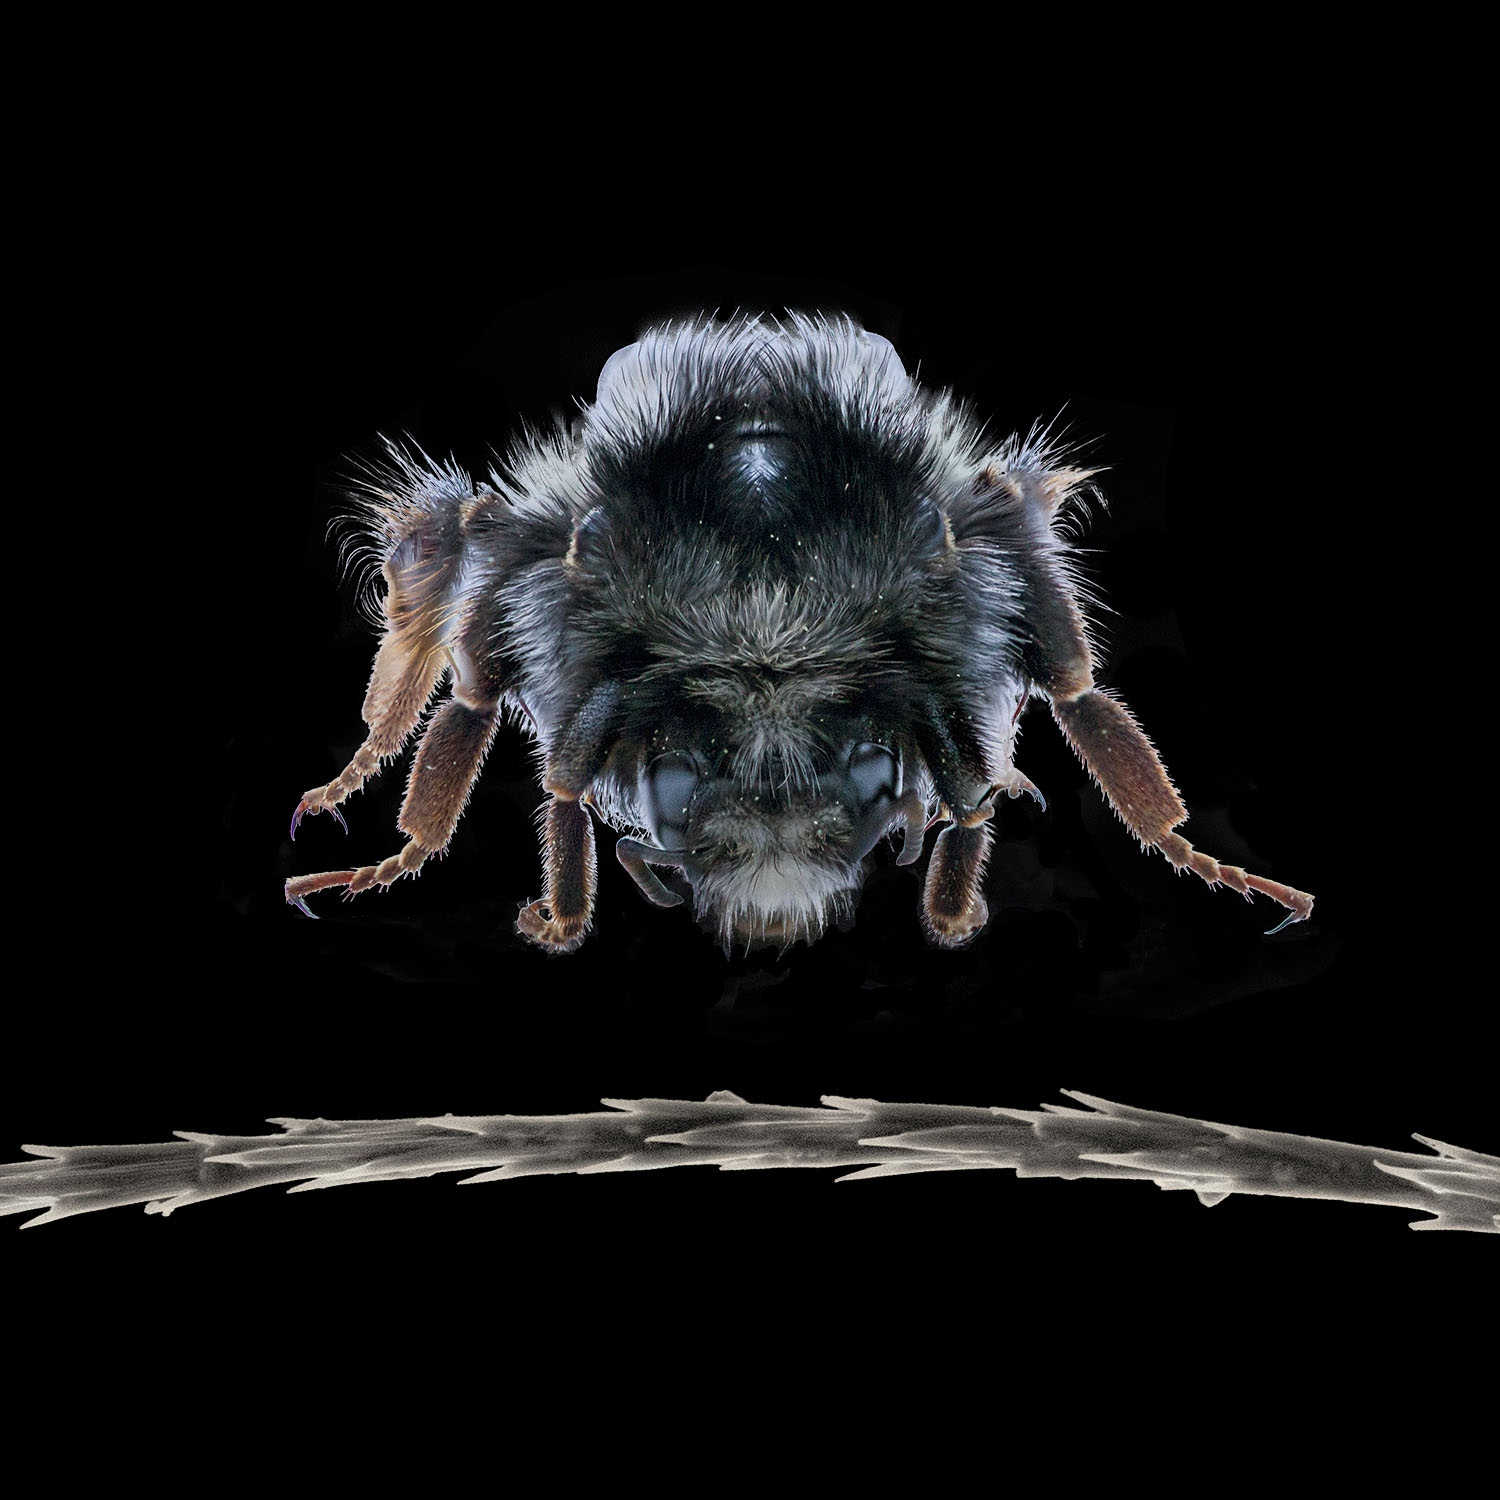 The decline of bees worldwide is well-documented, as is the threat to crops that rely on them for pollination. Little known is that natural fungal/mycelial extracts are being developed which boost bee immunity.